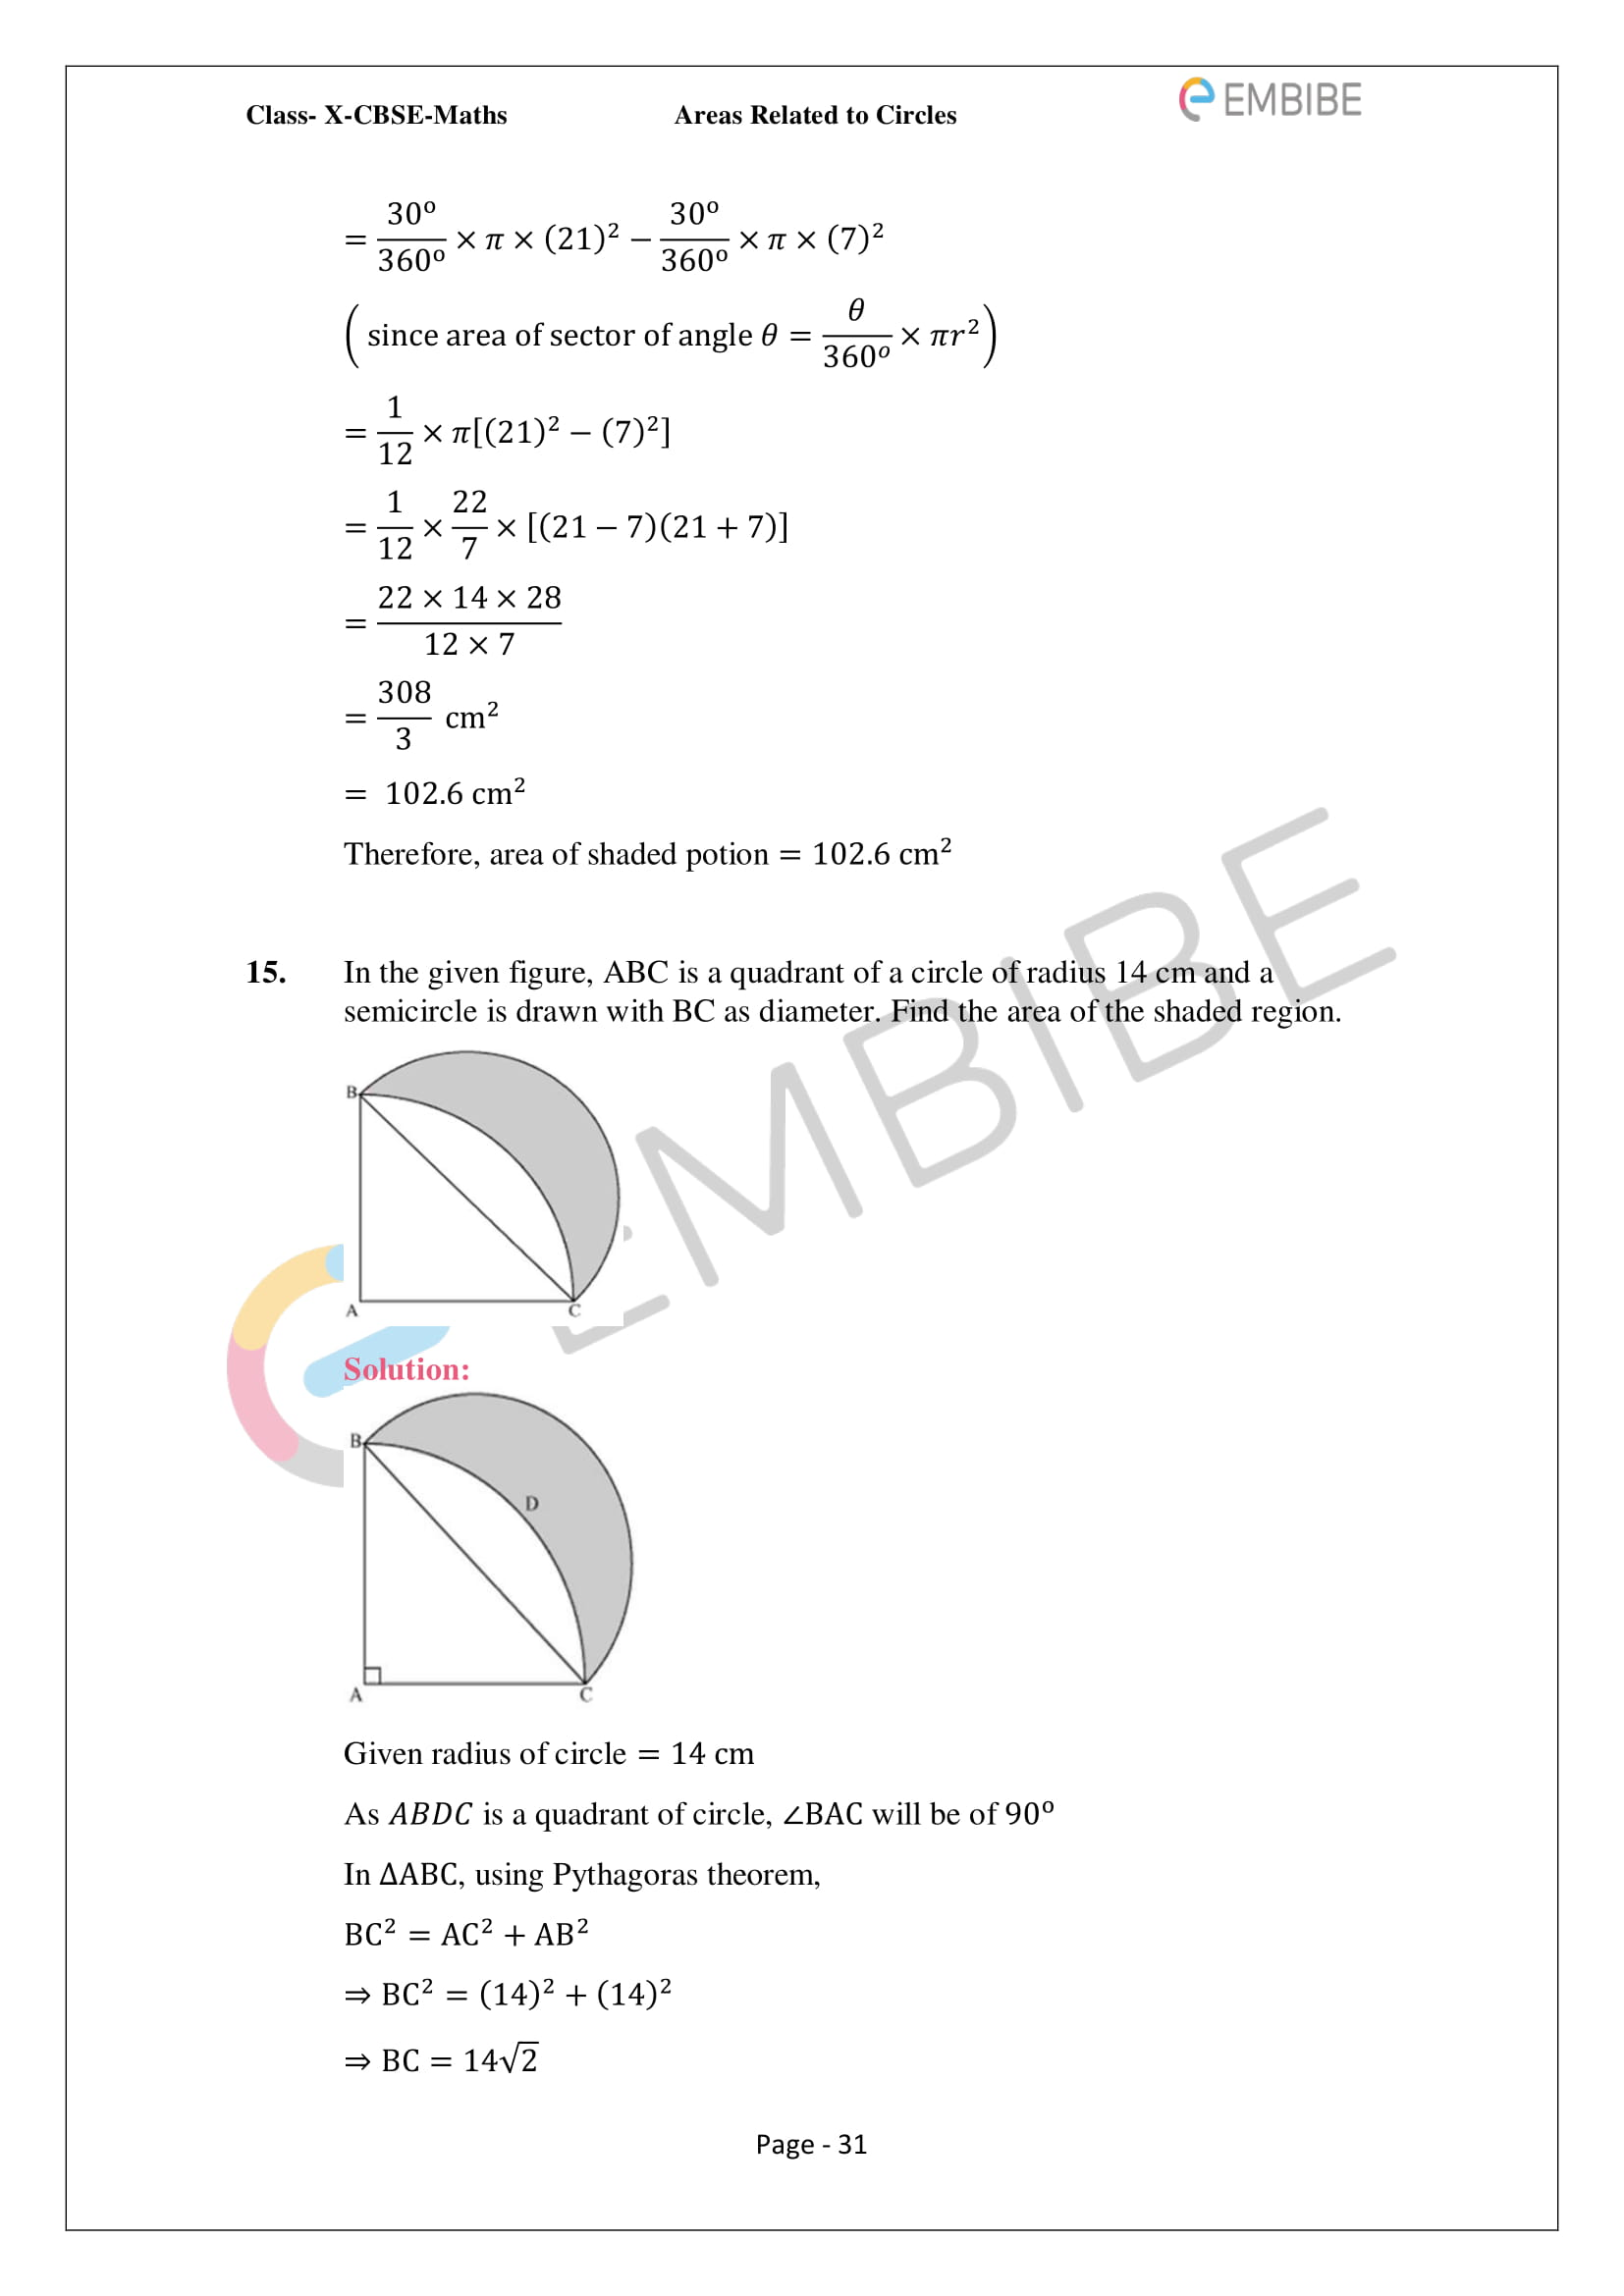 CBSE NCERT Solutions For Class 10 Maths Chapter 12 - Areas Related To Circle - 31